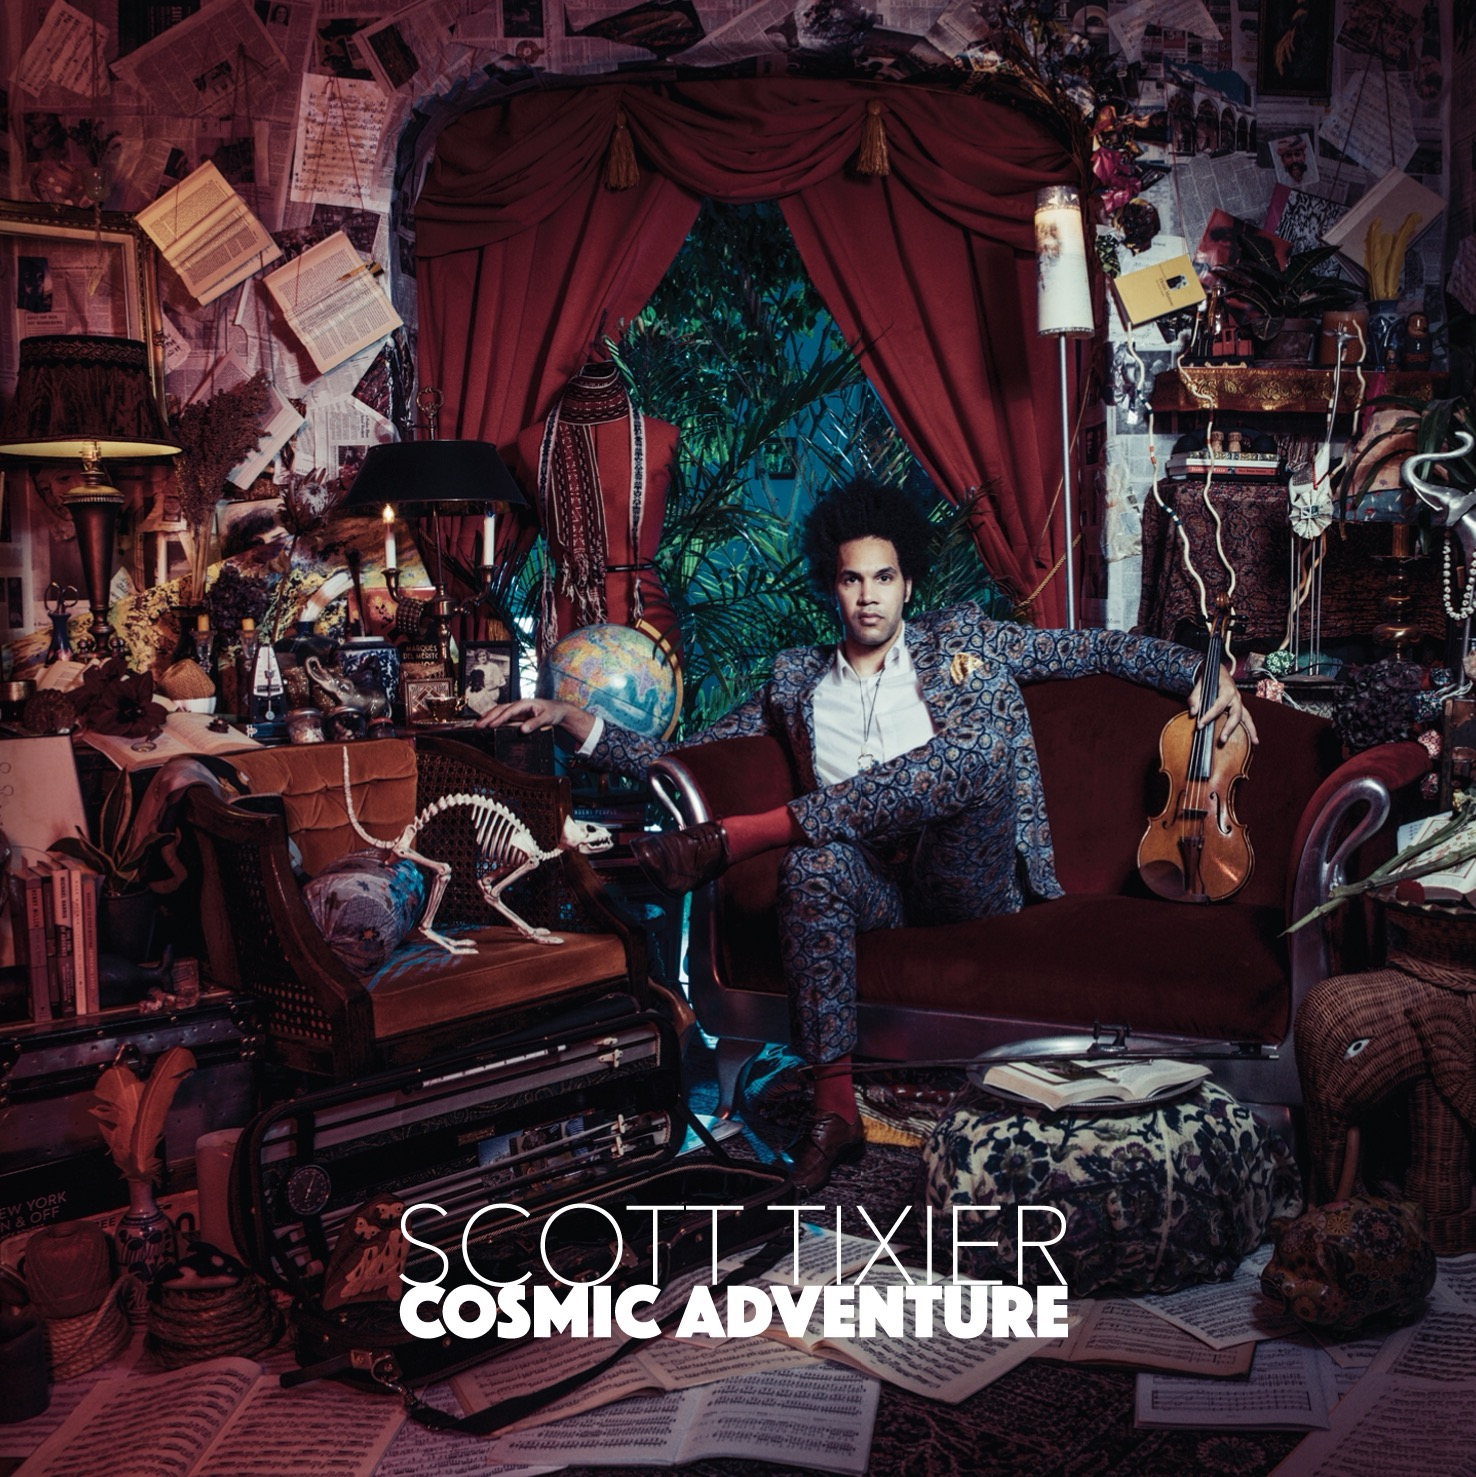 New Review for Scott Tixier's 'Cosmic Adventure' on Midwest Record